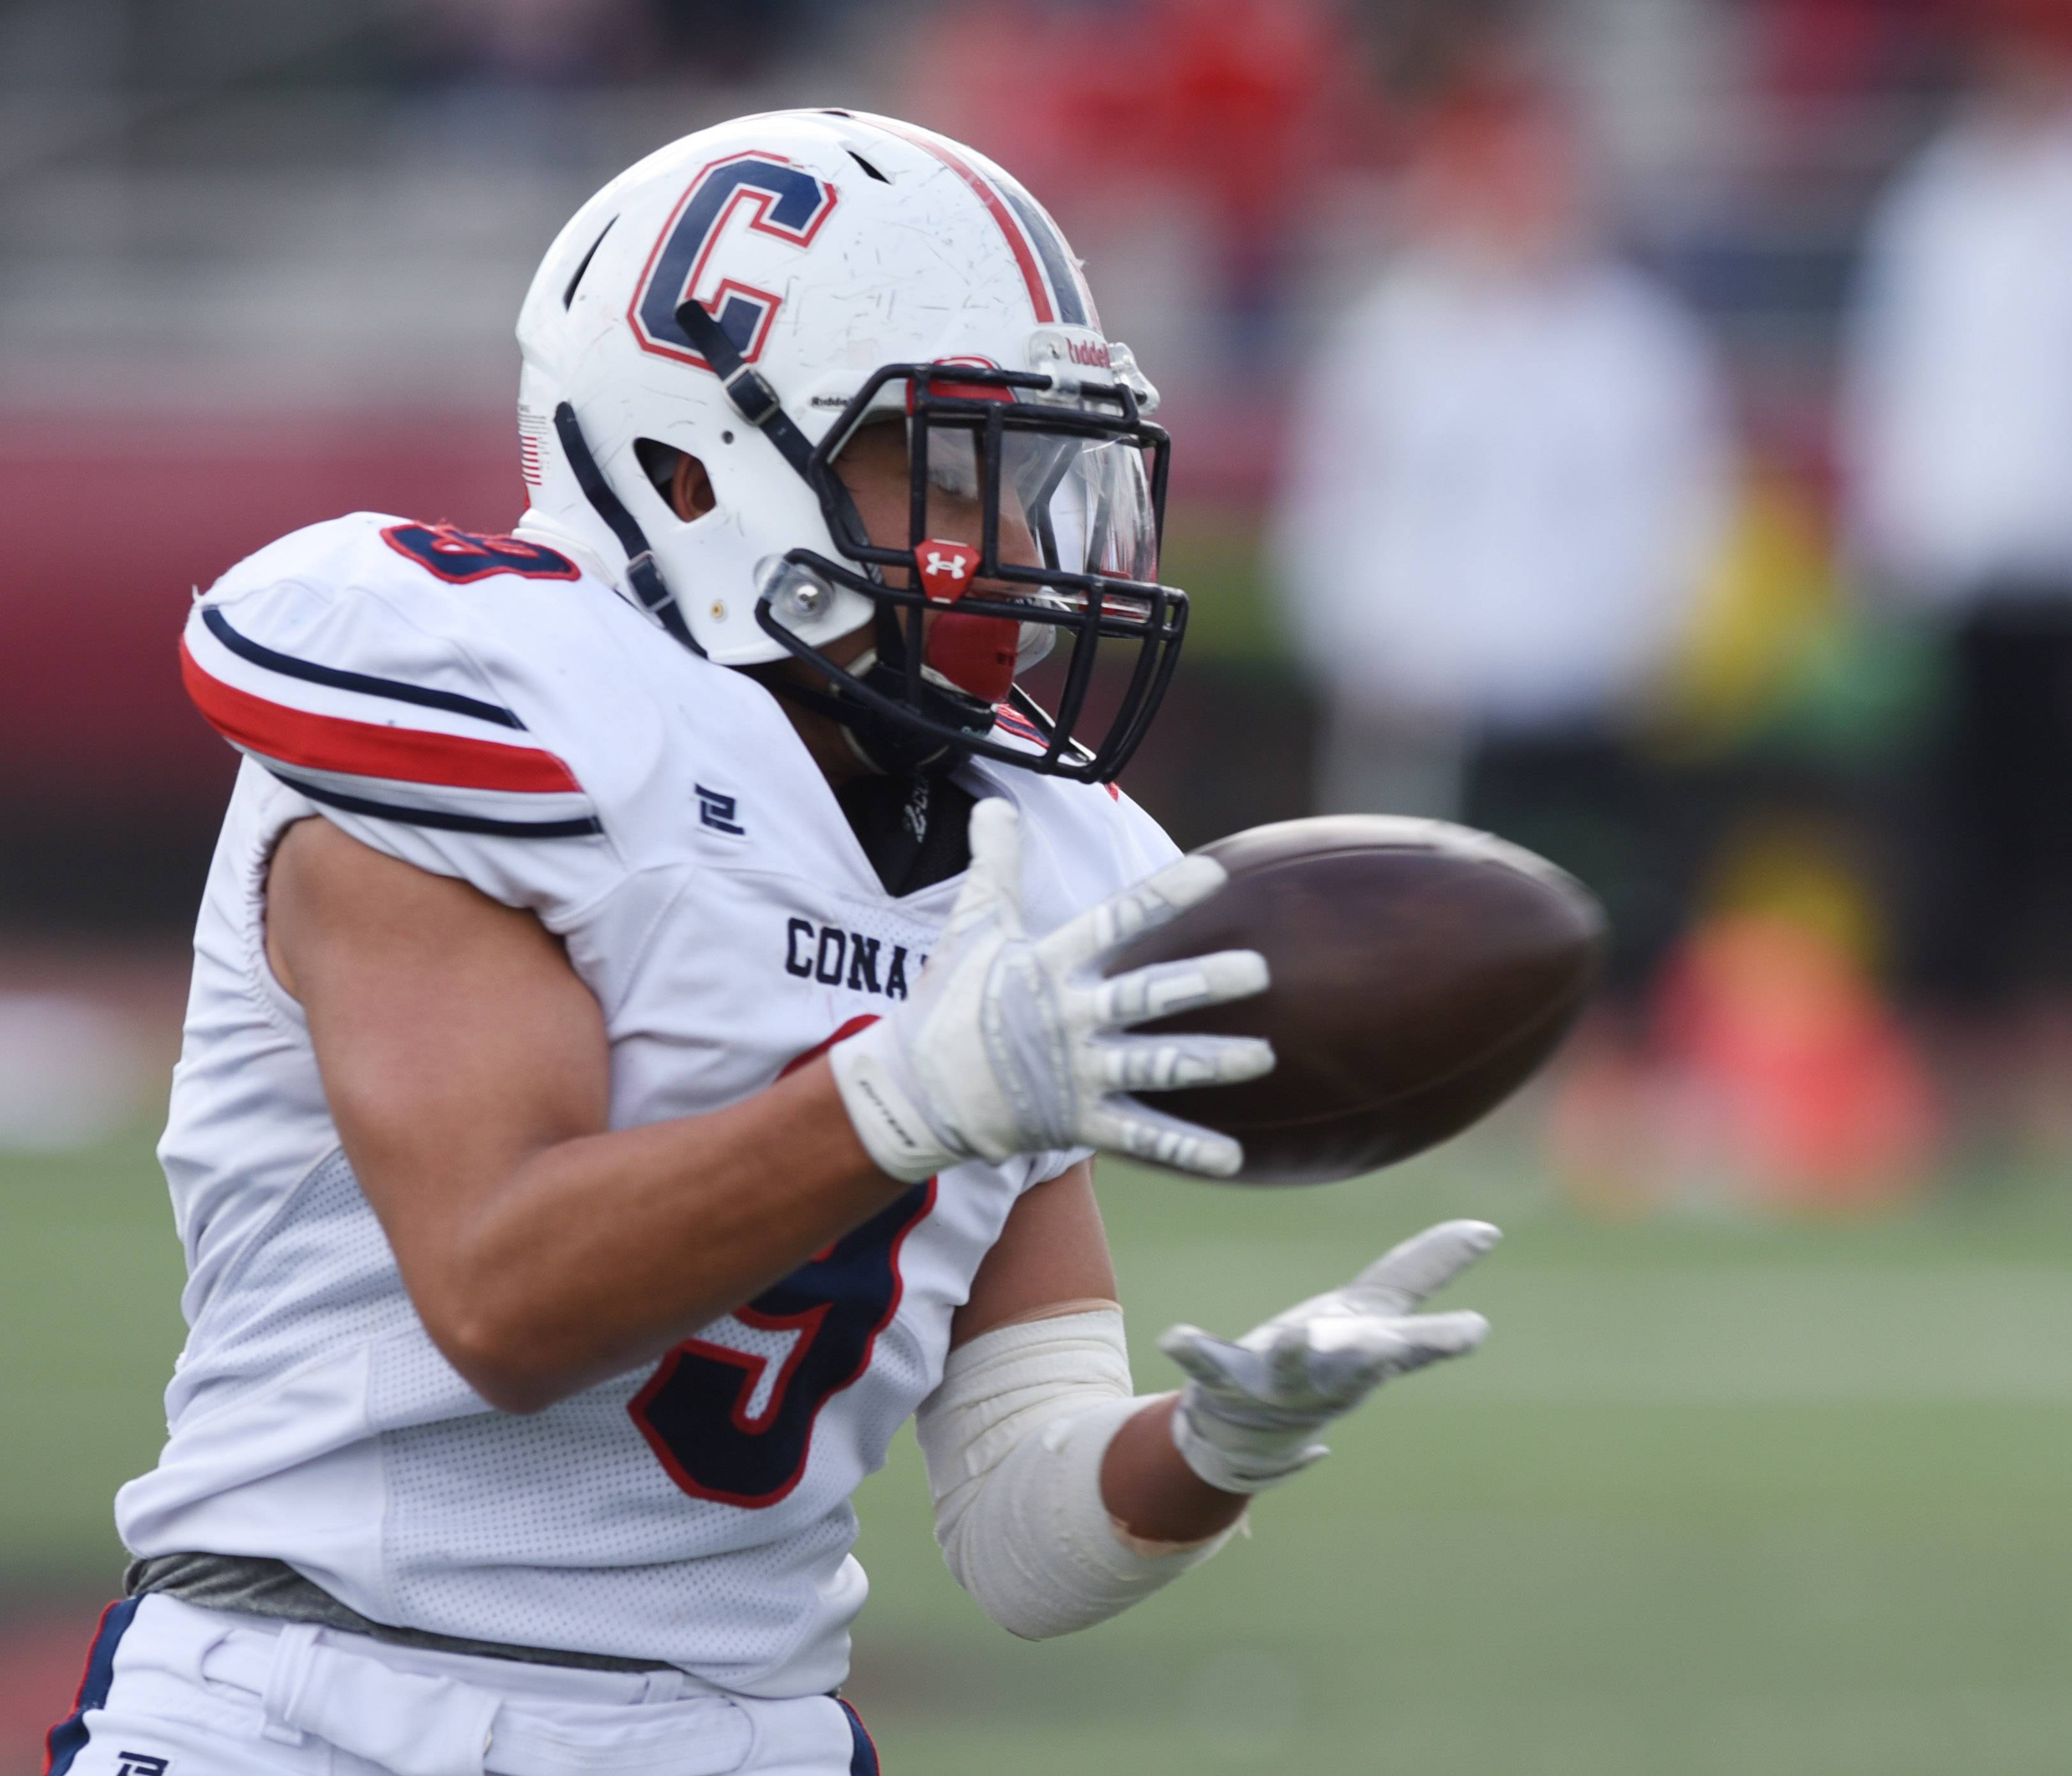 Conant's Joseph Perez catches a pass during Saturday's Class 8A playoff game against Hinsdale Central.